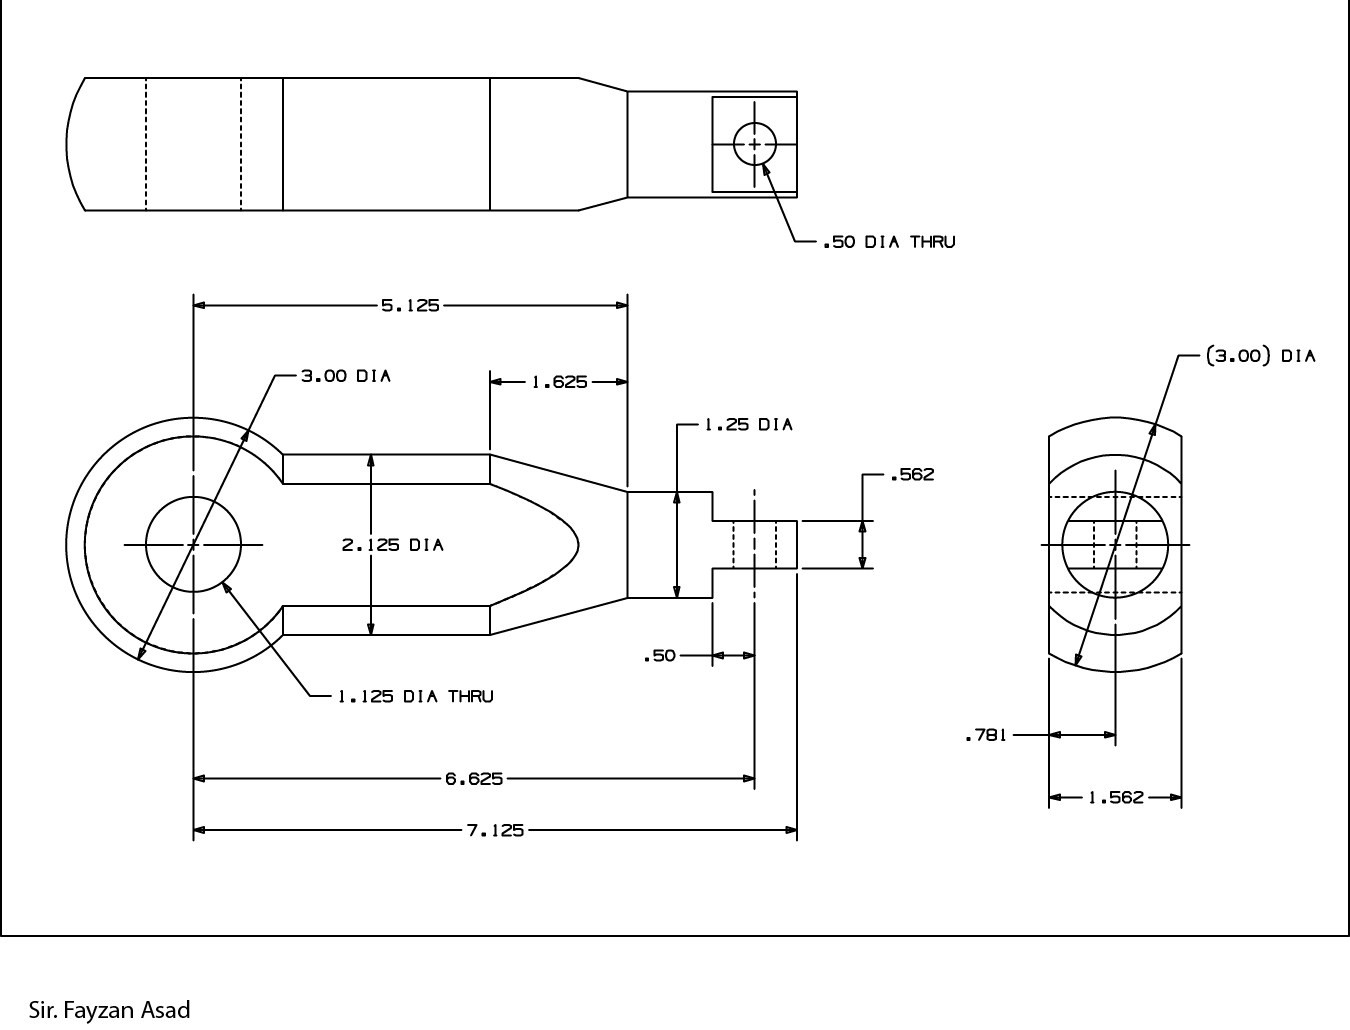 2d mechanical drawings fayzan asad Simple 2d cad